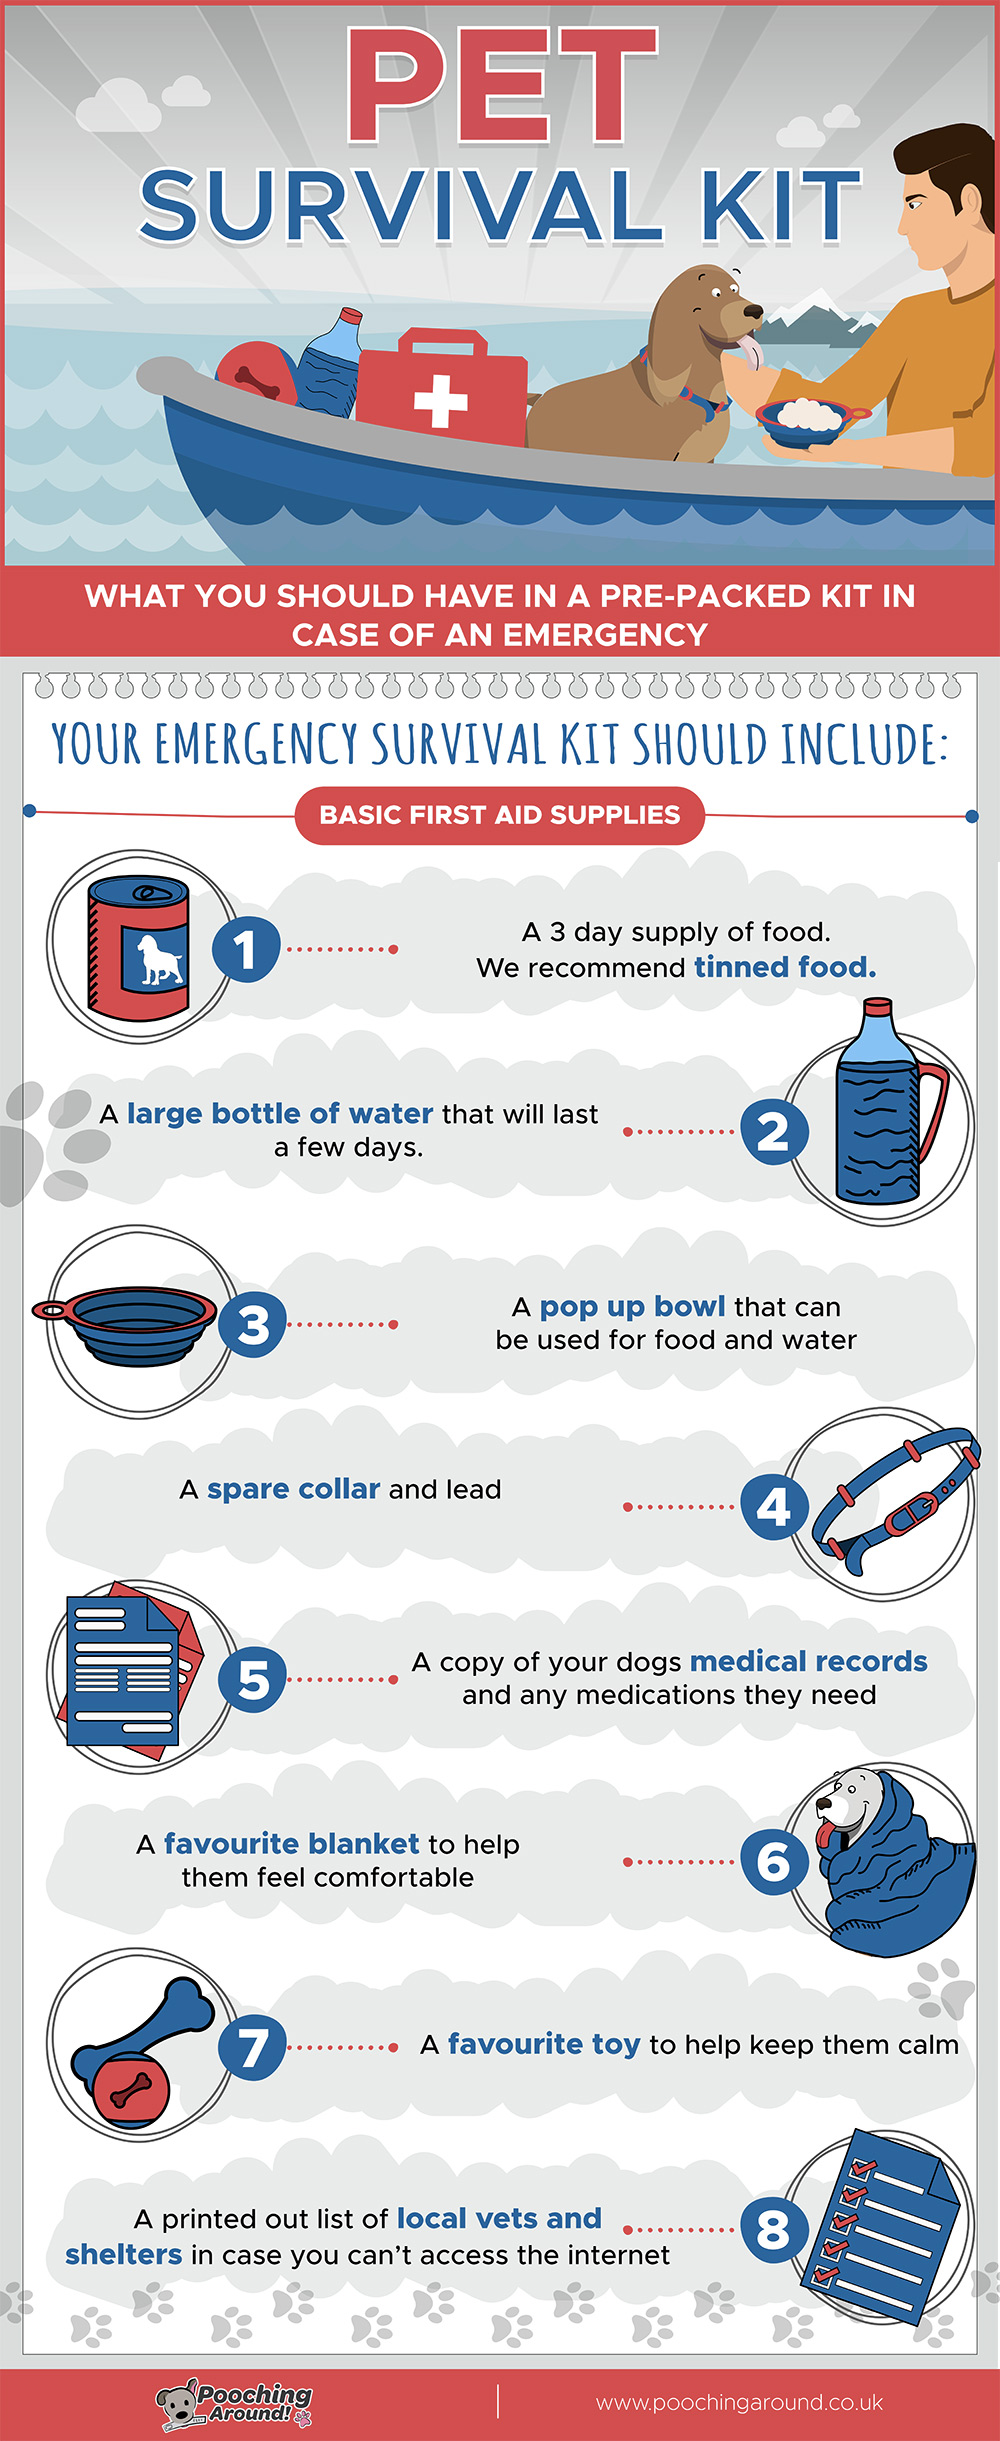 Emergency Surival Kit for Dogs